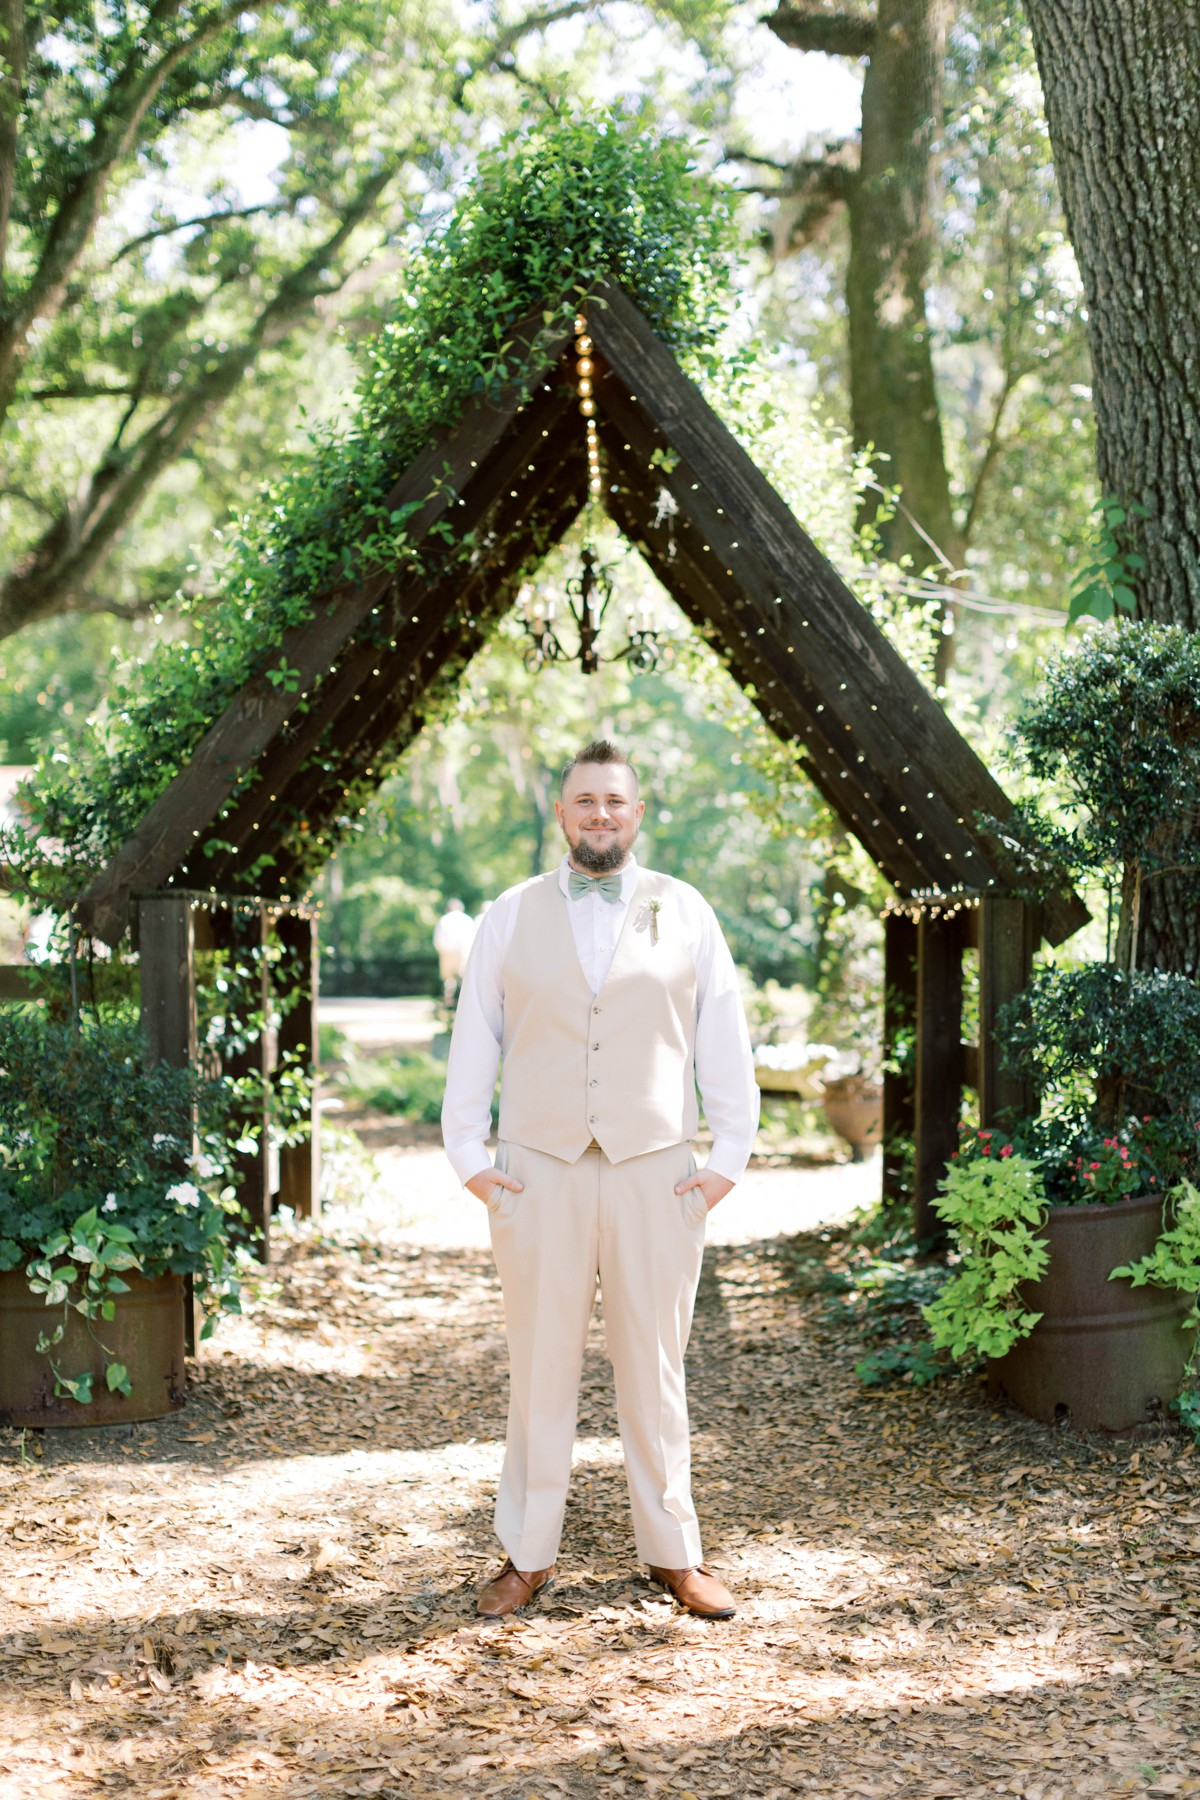 Bressler-Wedding-Preview-Tuckers-Farmhouse-Jacksonville-Wedding-Photographer-Chantell-Rae029.jpg